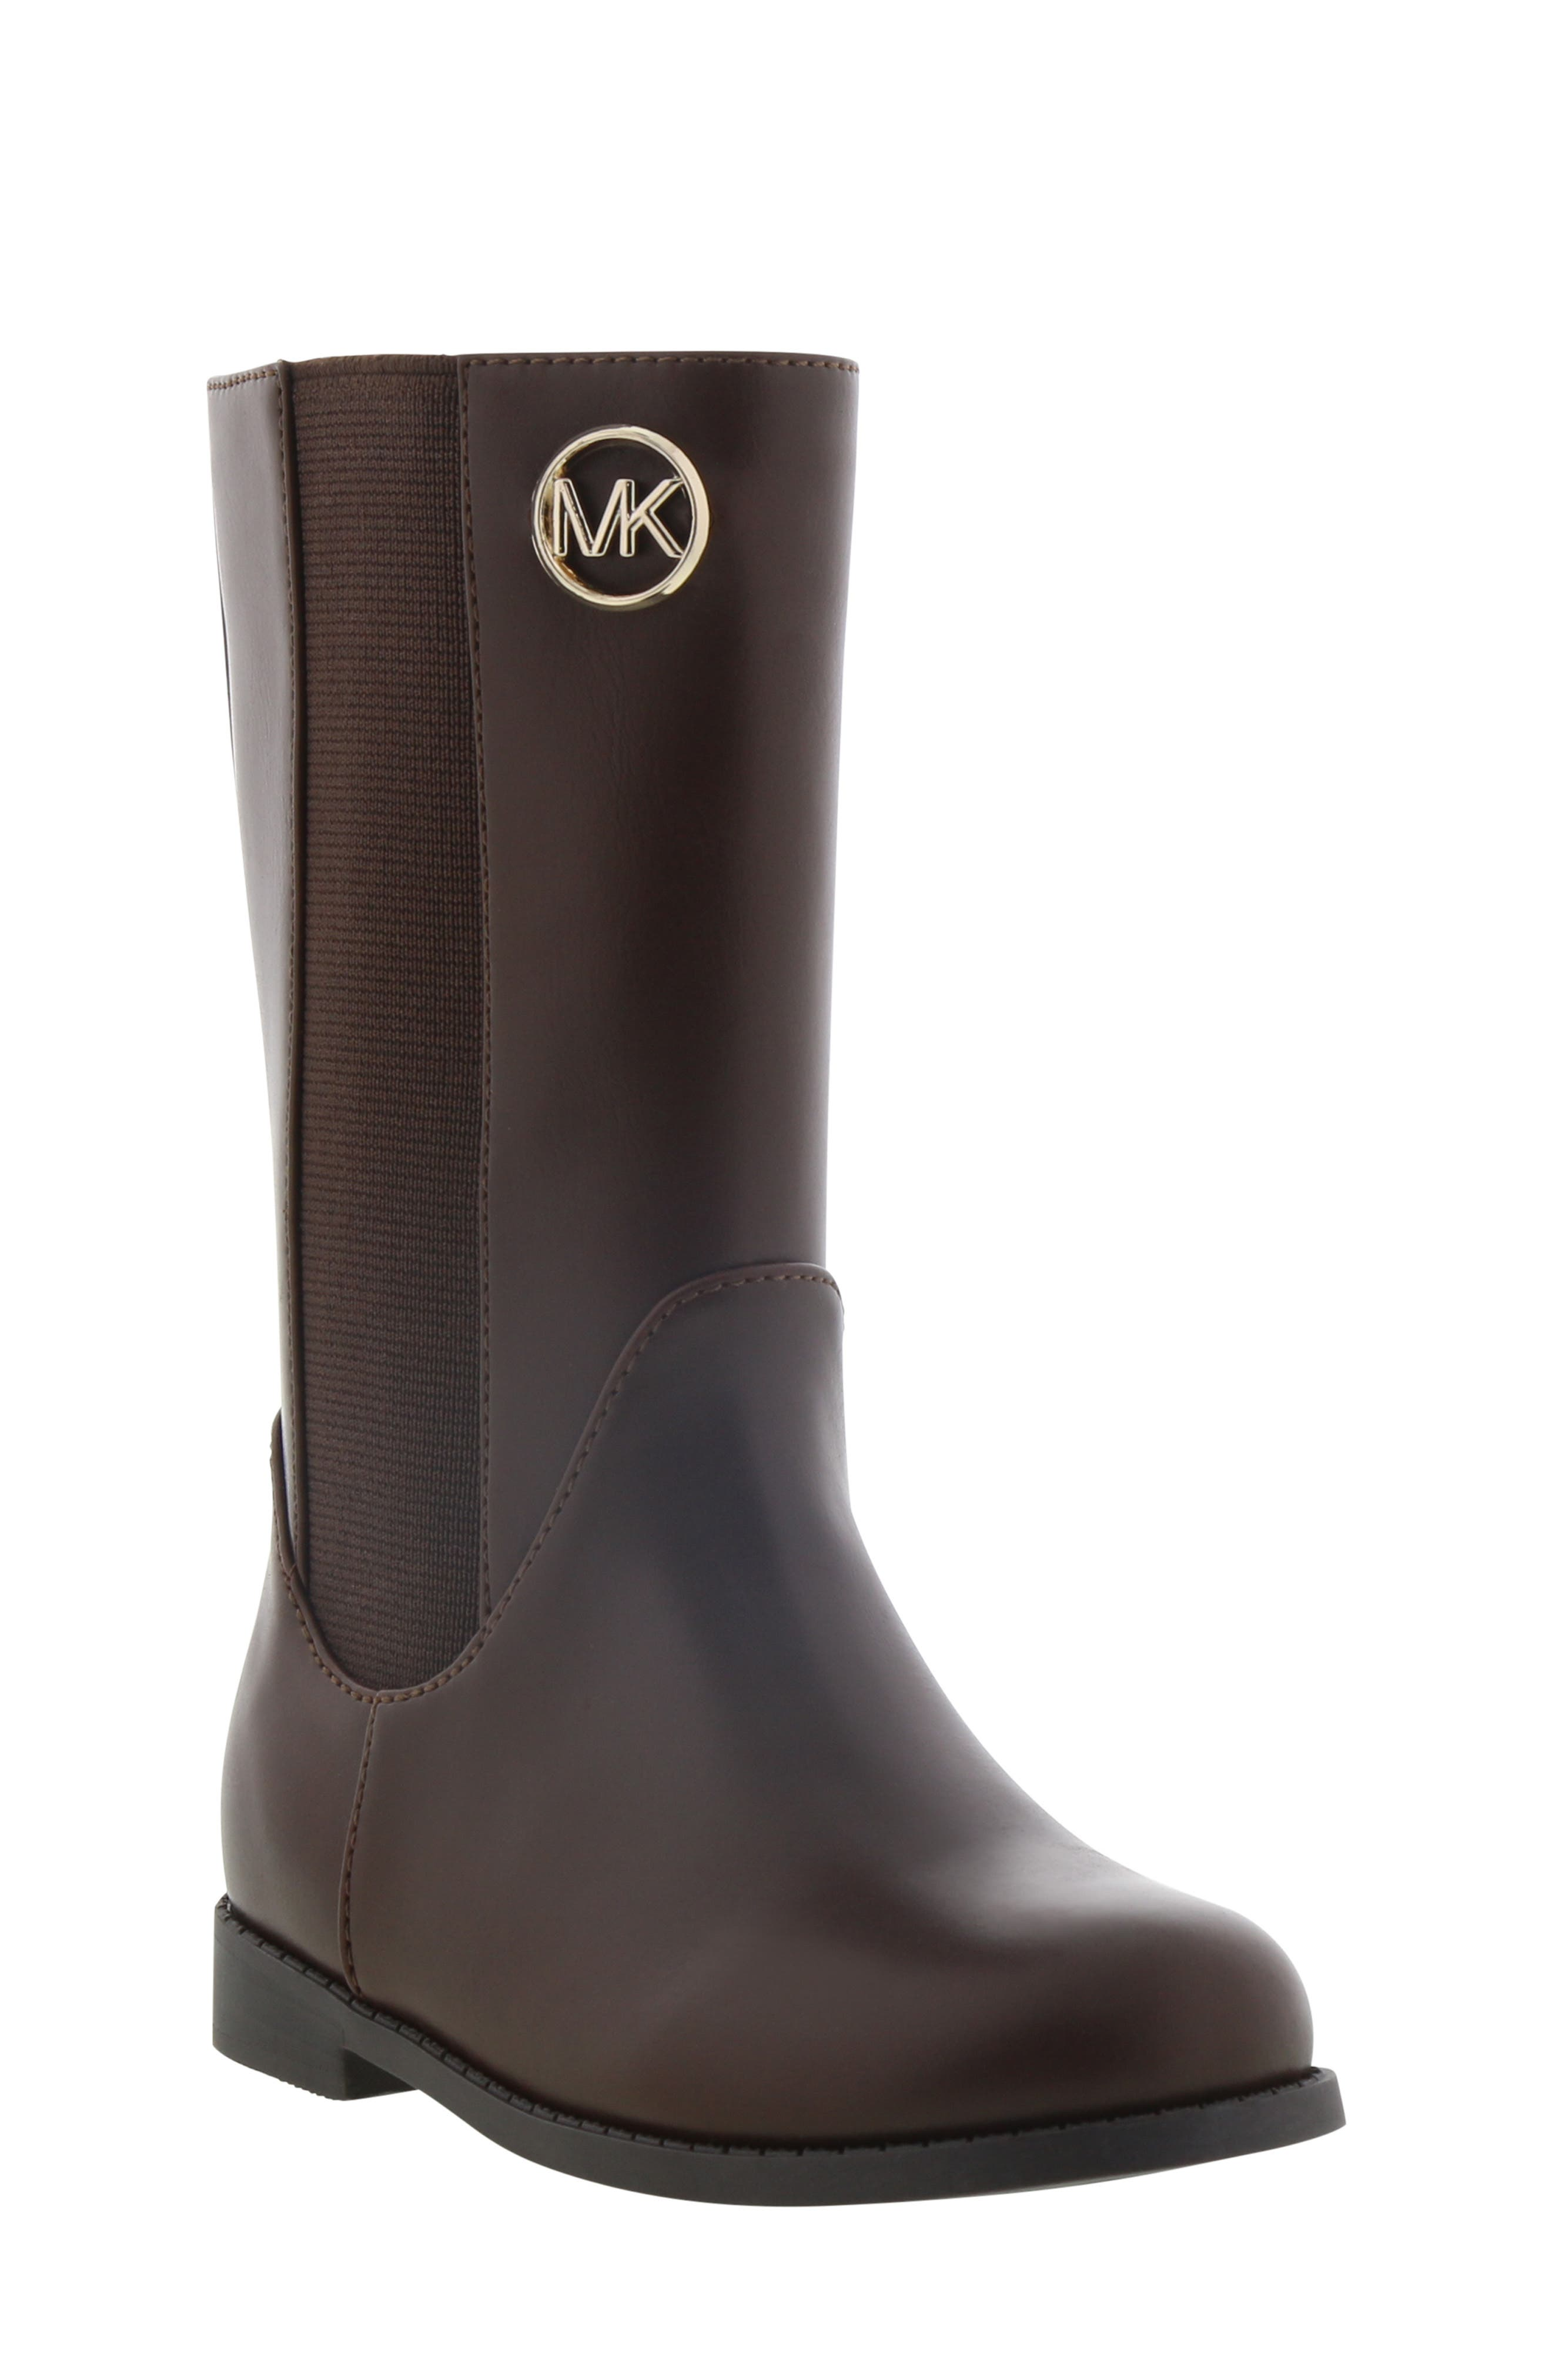 Toddler Girls Michael Michaels Kors Emma Rubie Faux Leather Tall Boot Size 6 M  Brown